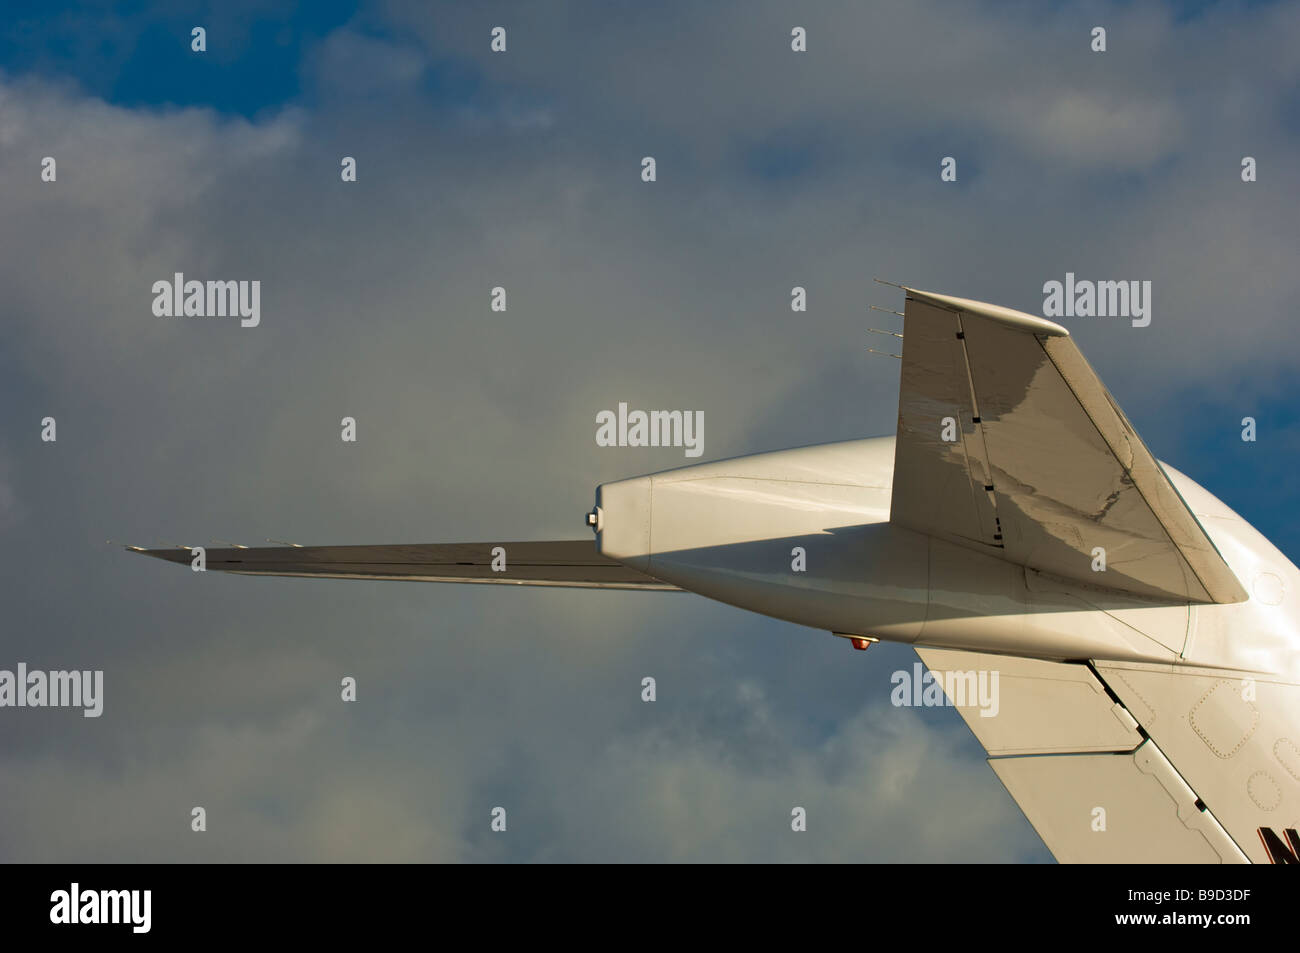 small jet aircraft - Stock Image